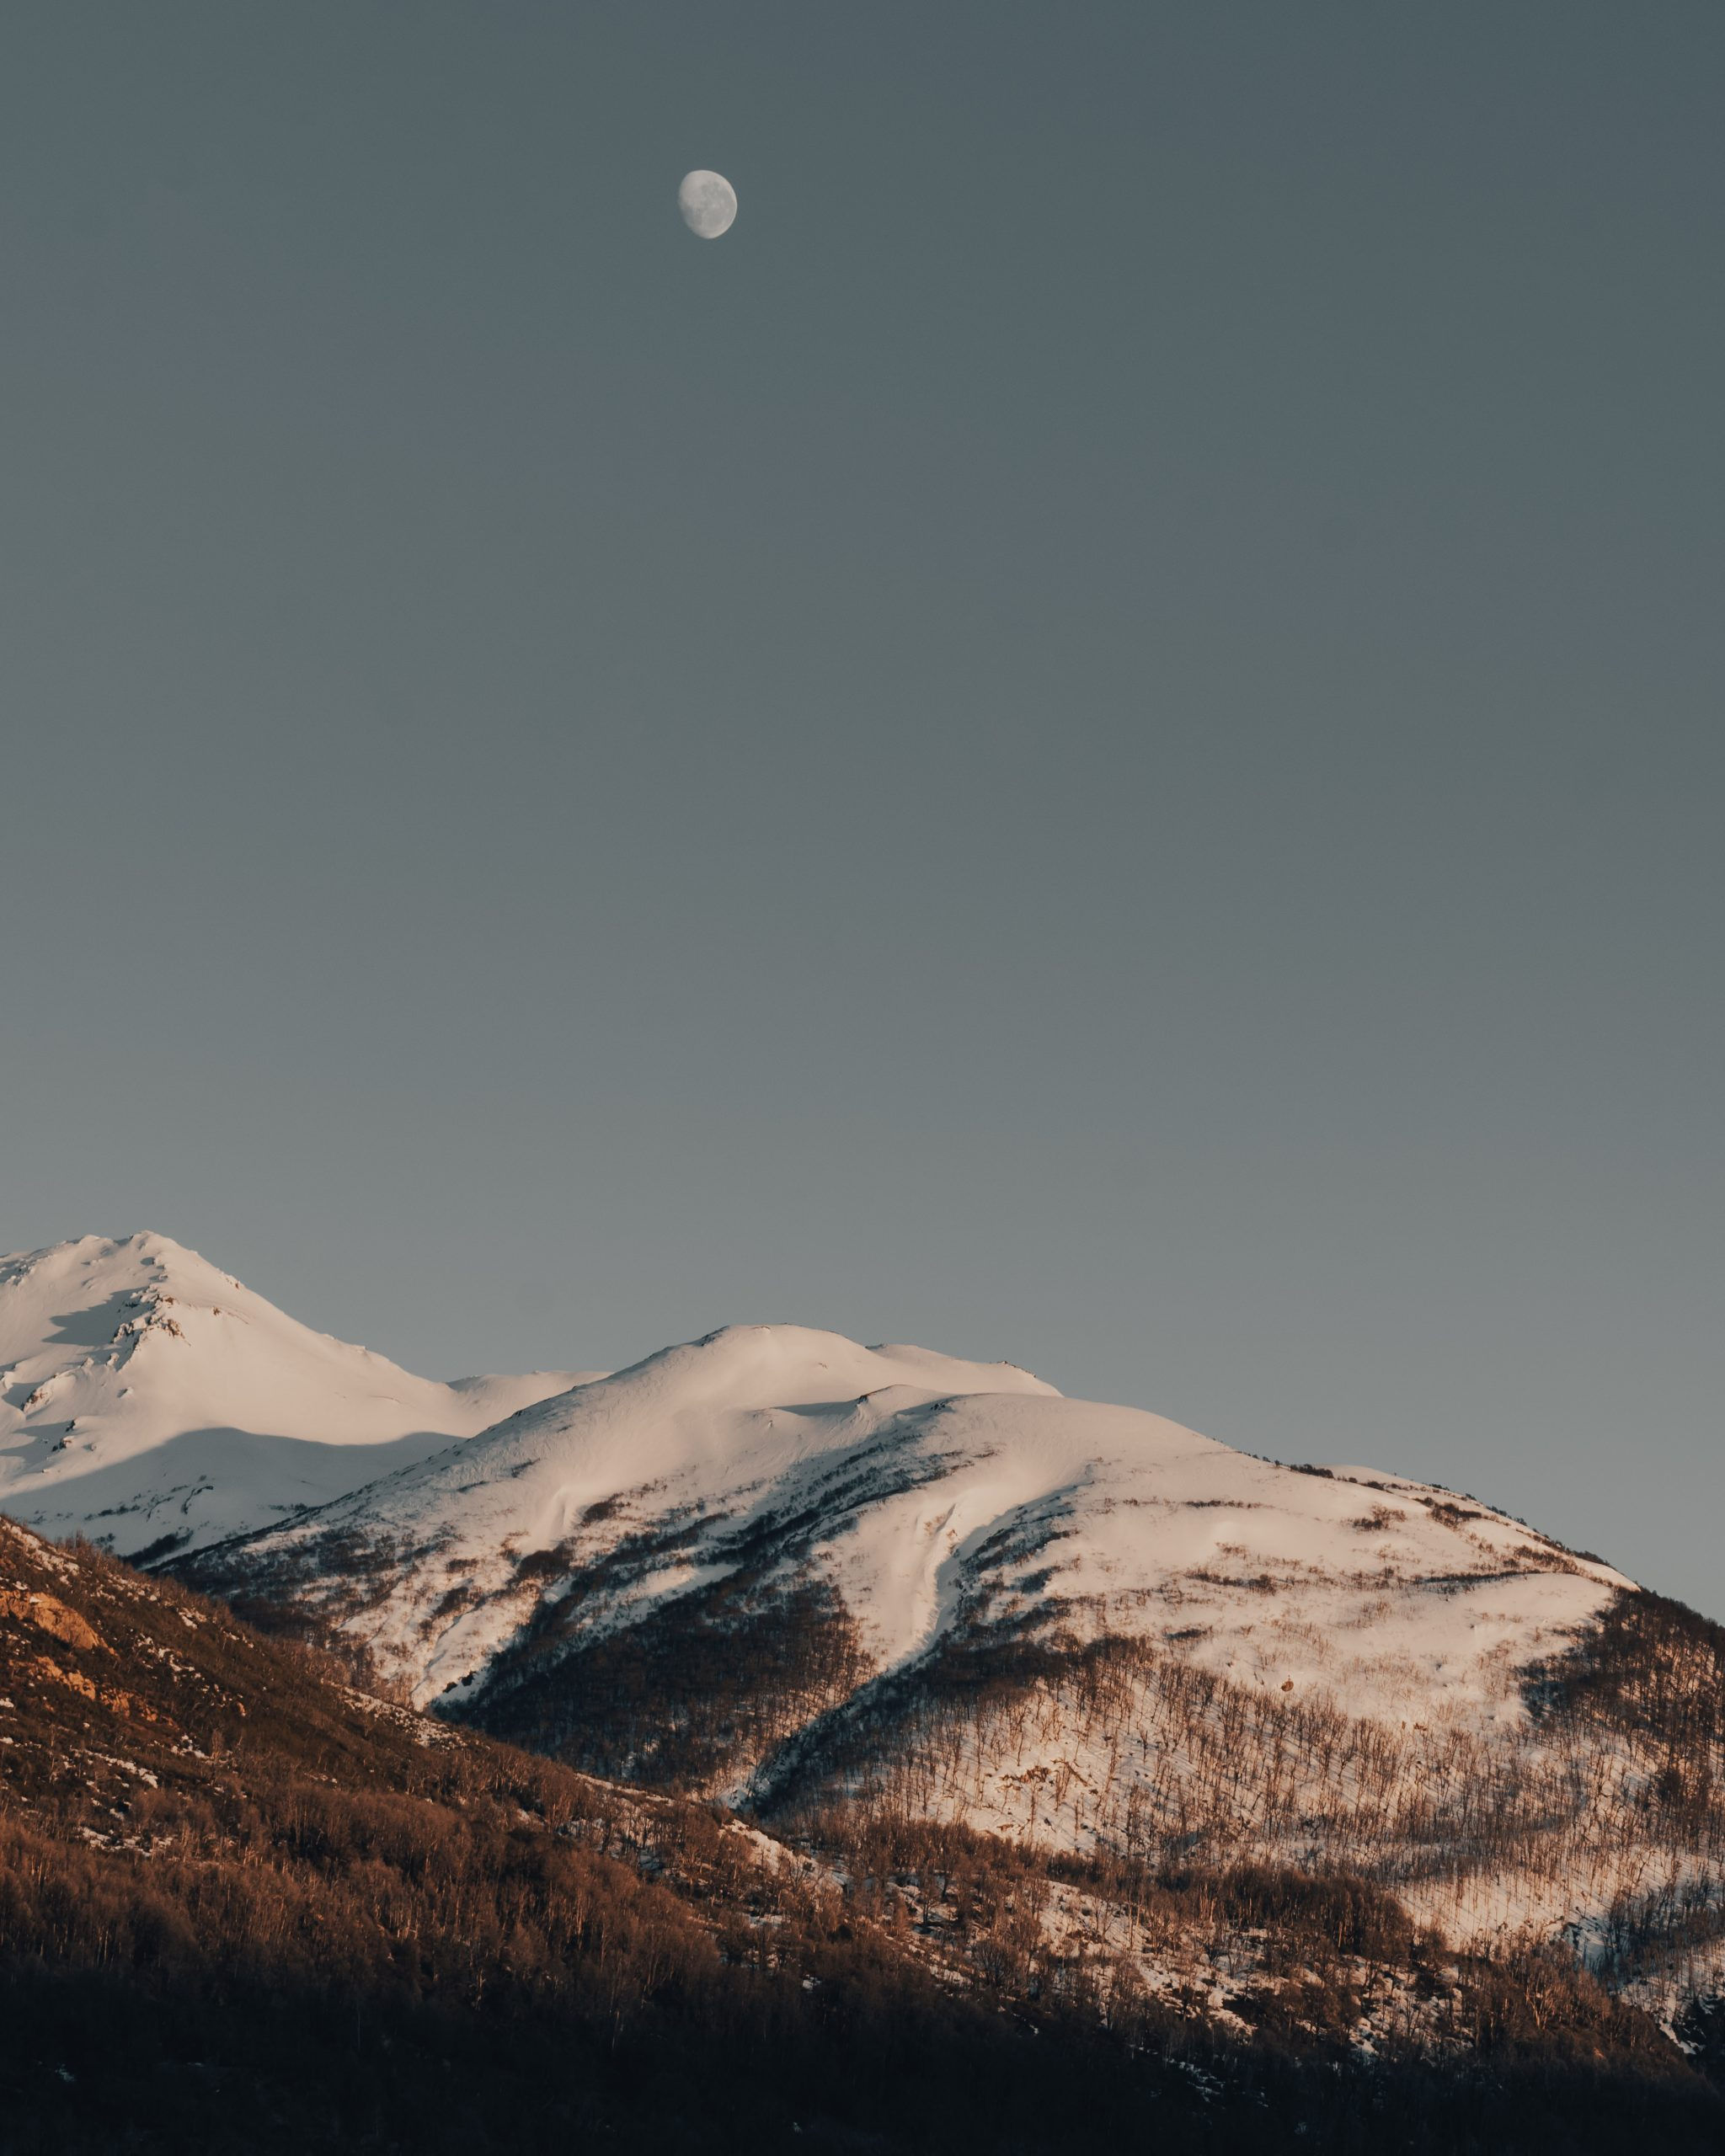 Moon and snowy mountains